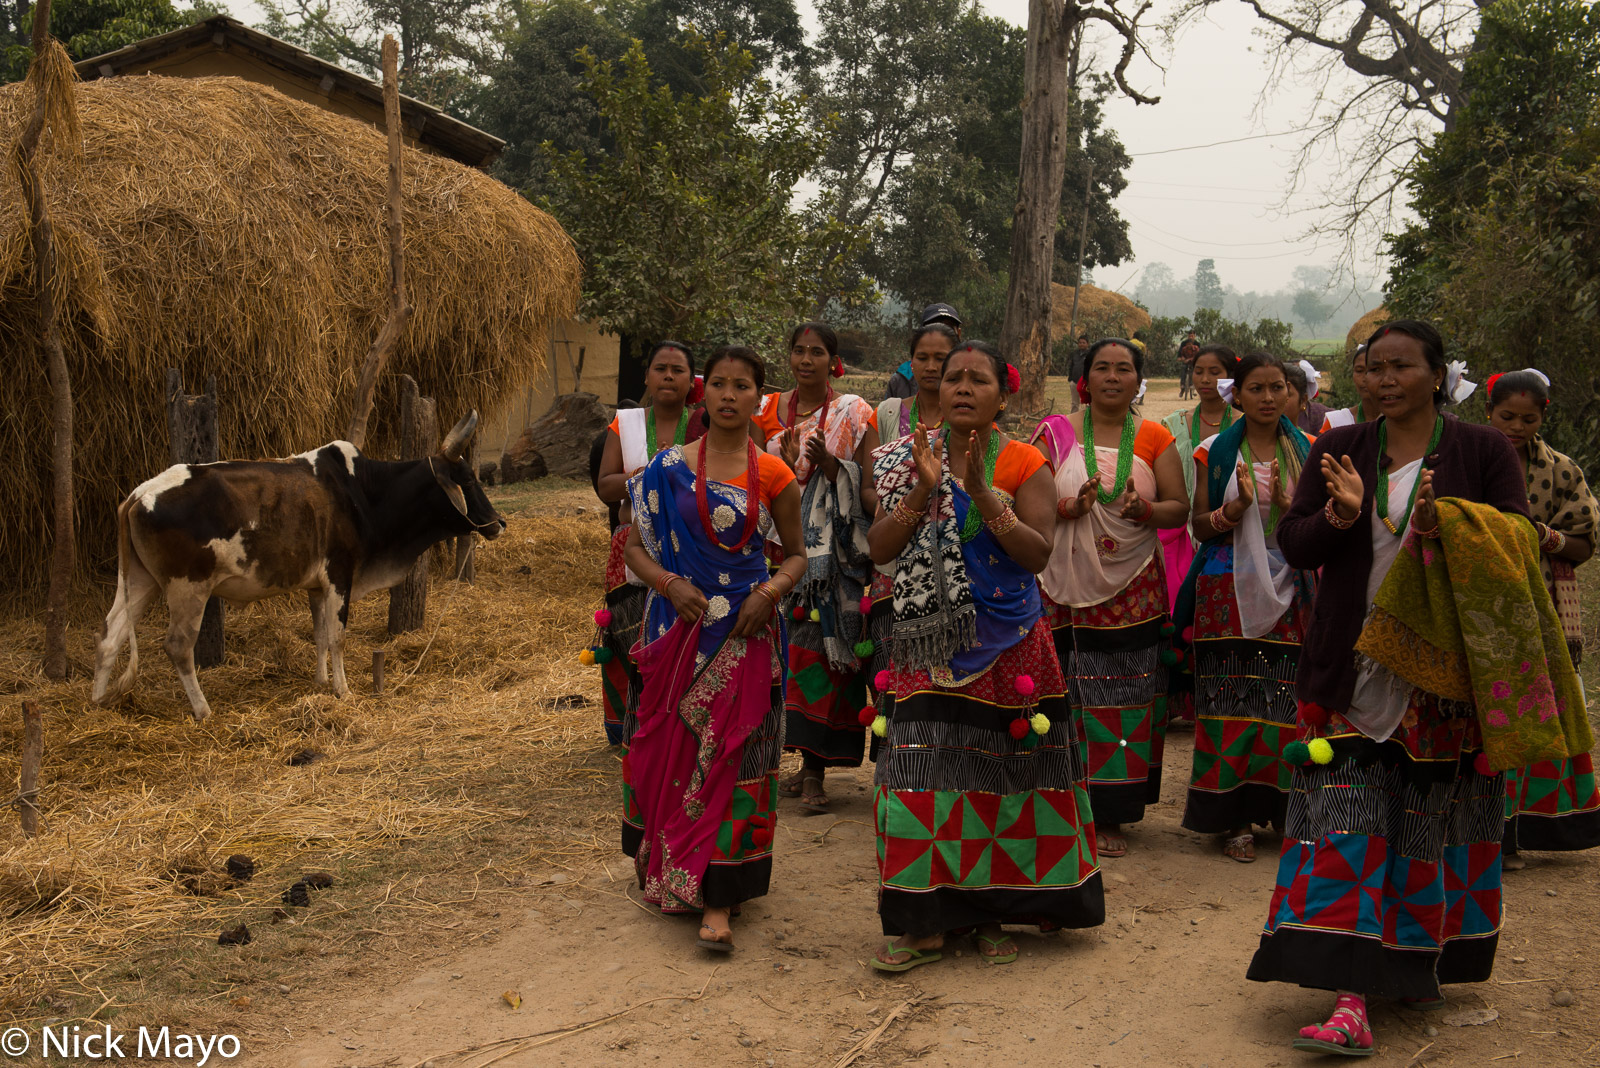 Cow, Nepal, Terai, Tharu, photo